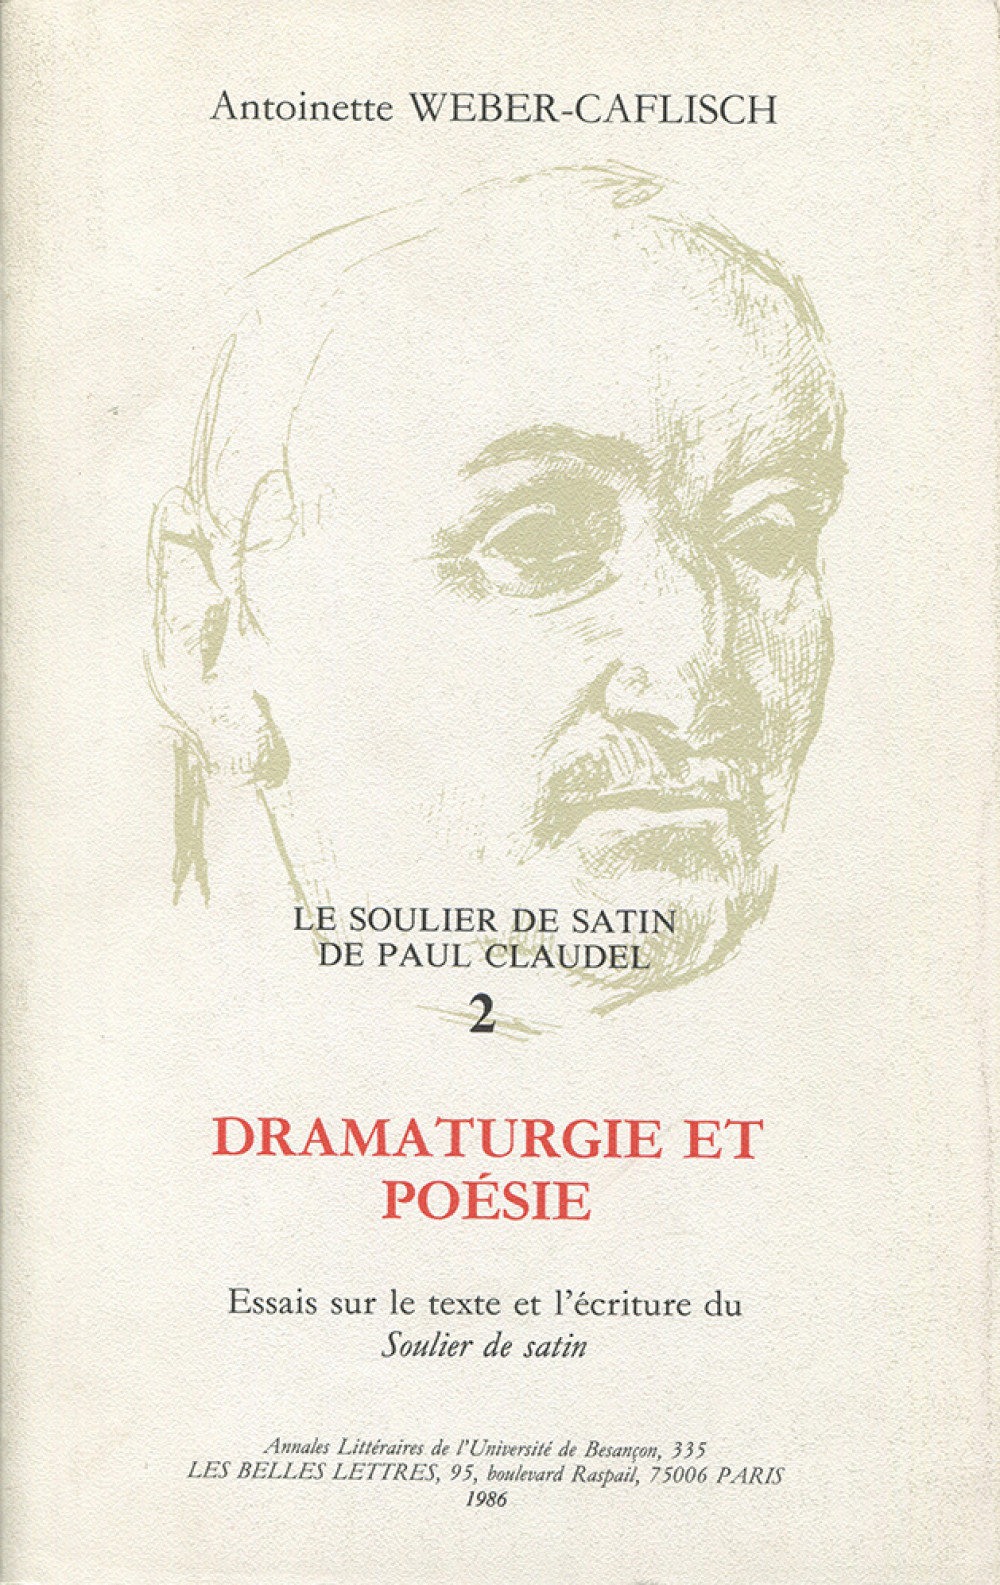 Le soulier de satin de Paul Claudel 2